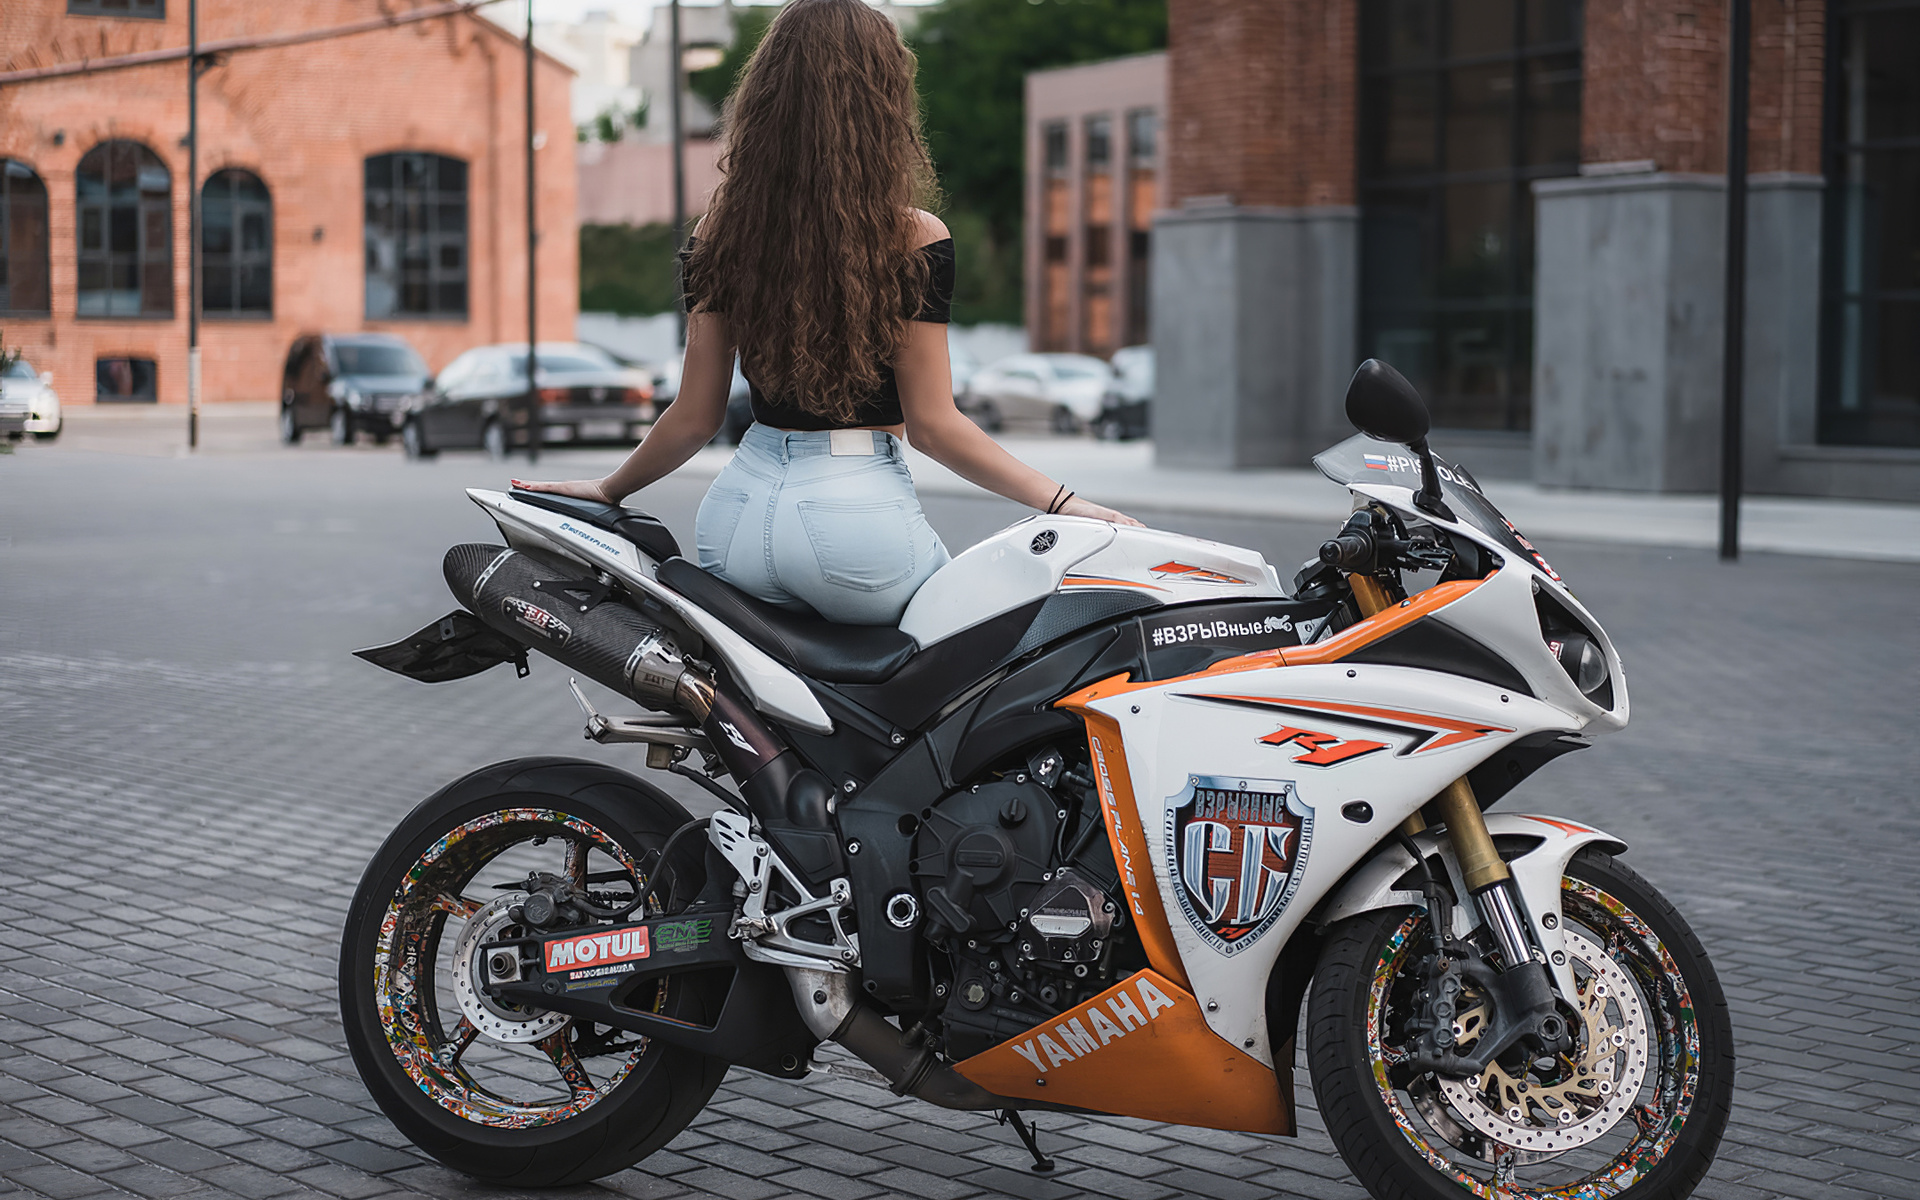 motorcycle, girl, yamaha, r1, road, city, street, brunette, jeans, brown hair, sexy